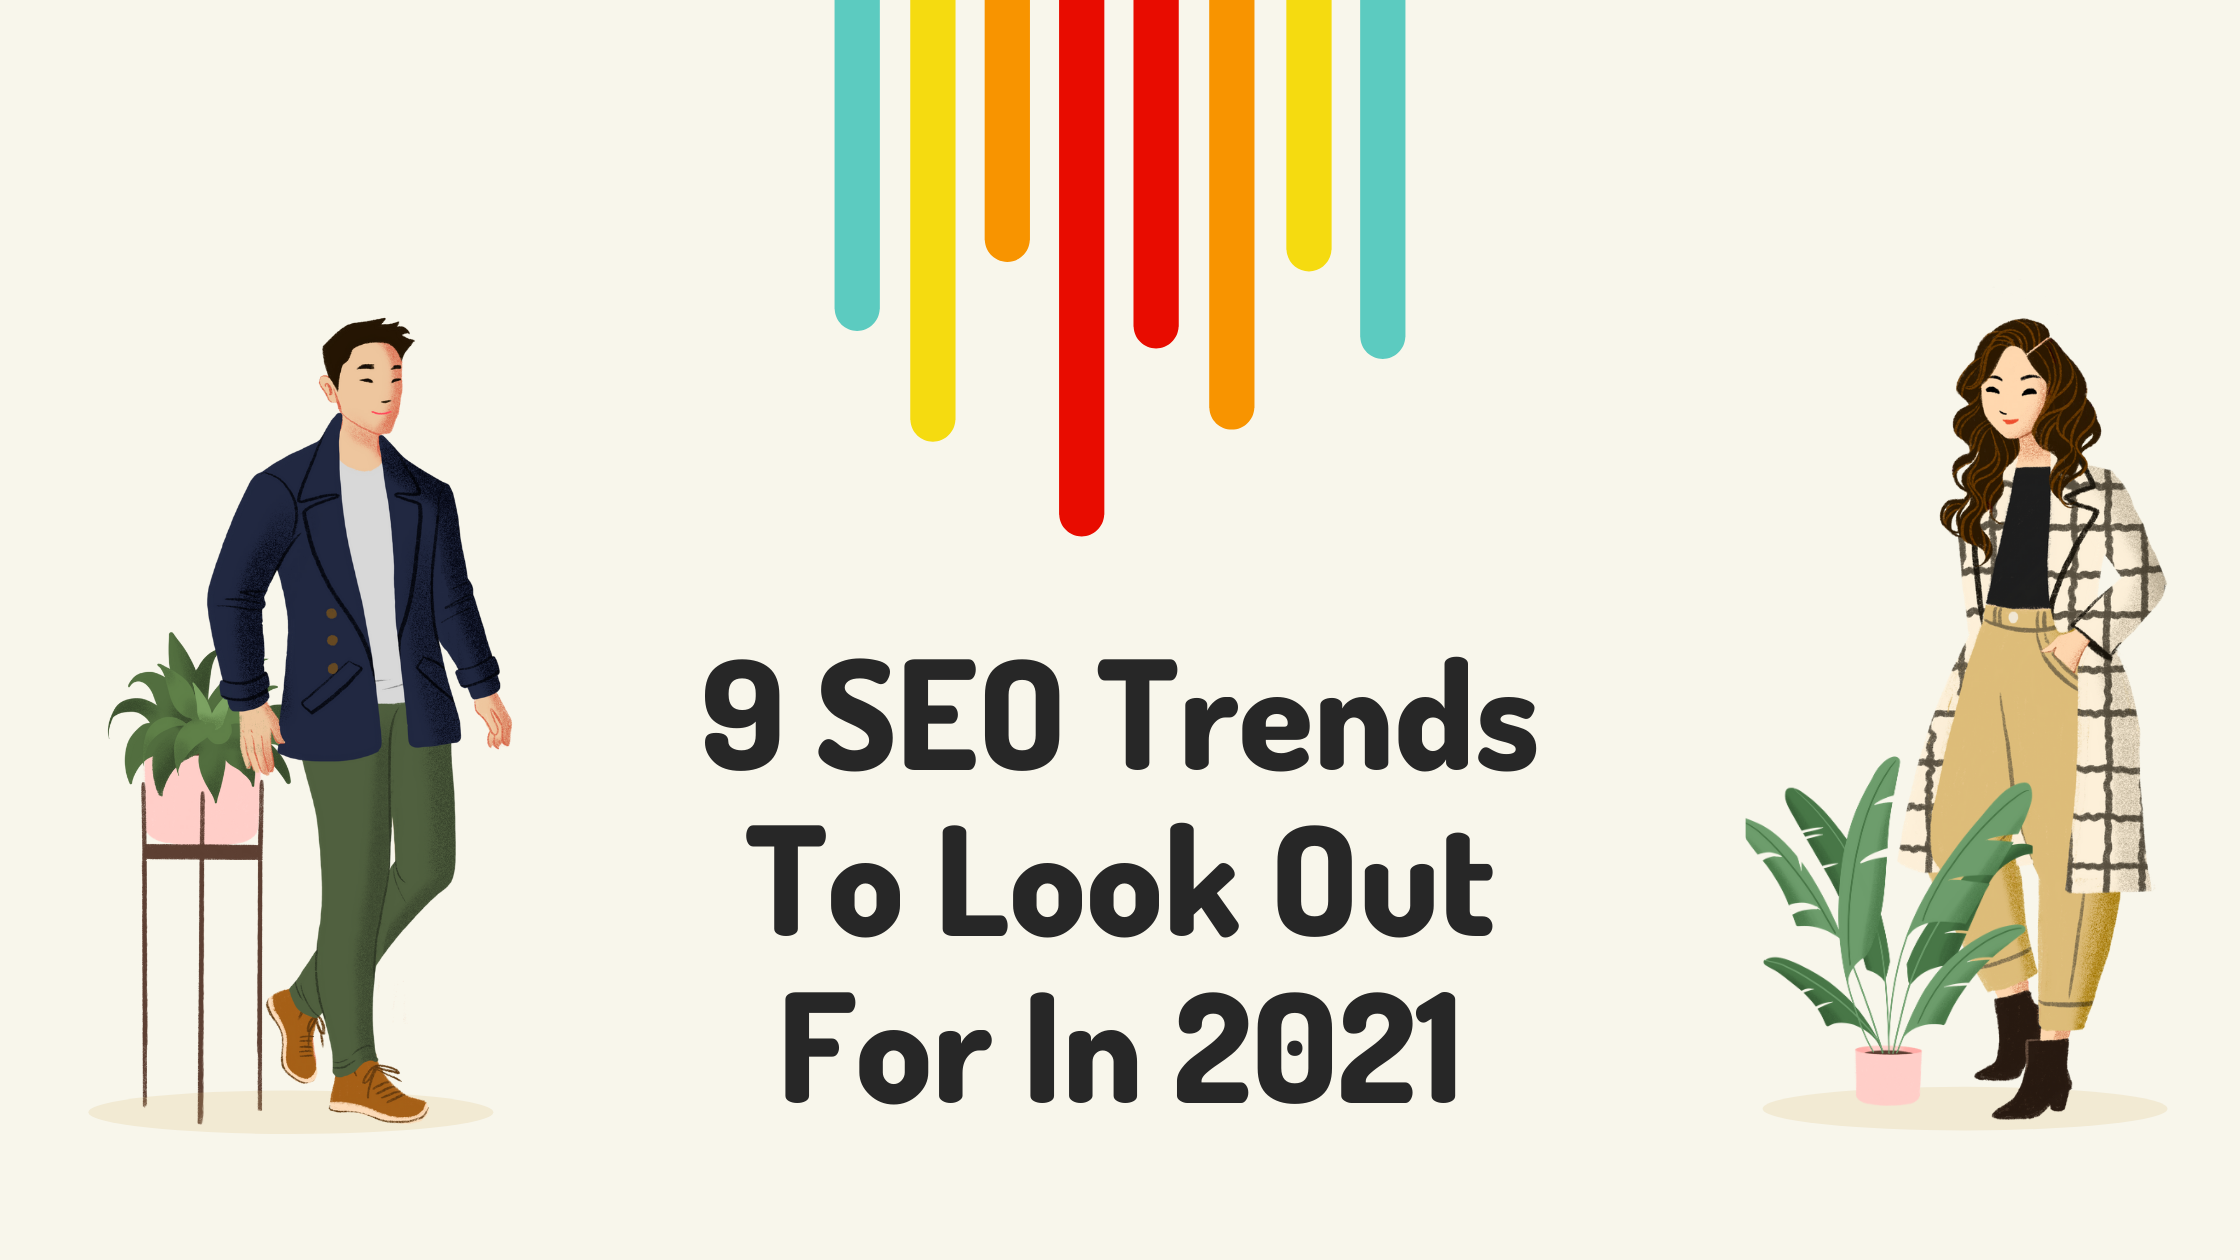 seo trends, send trends 2021, seo 2021, new seo 2021, new 2021 seo, search engine optimization 2021, seo tips 2021, seo tips